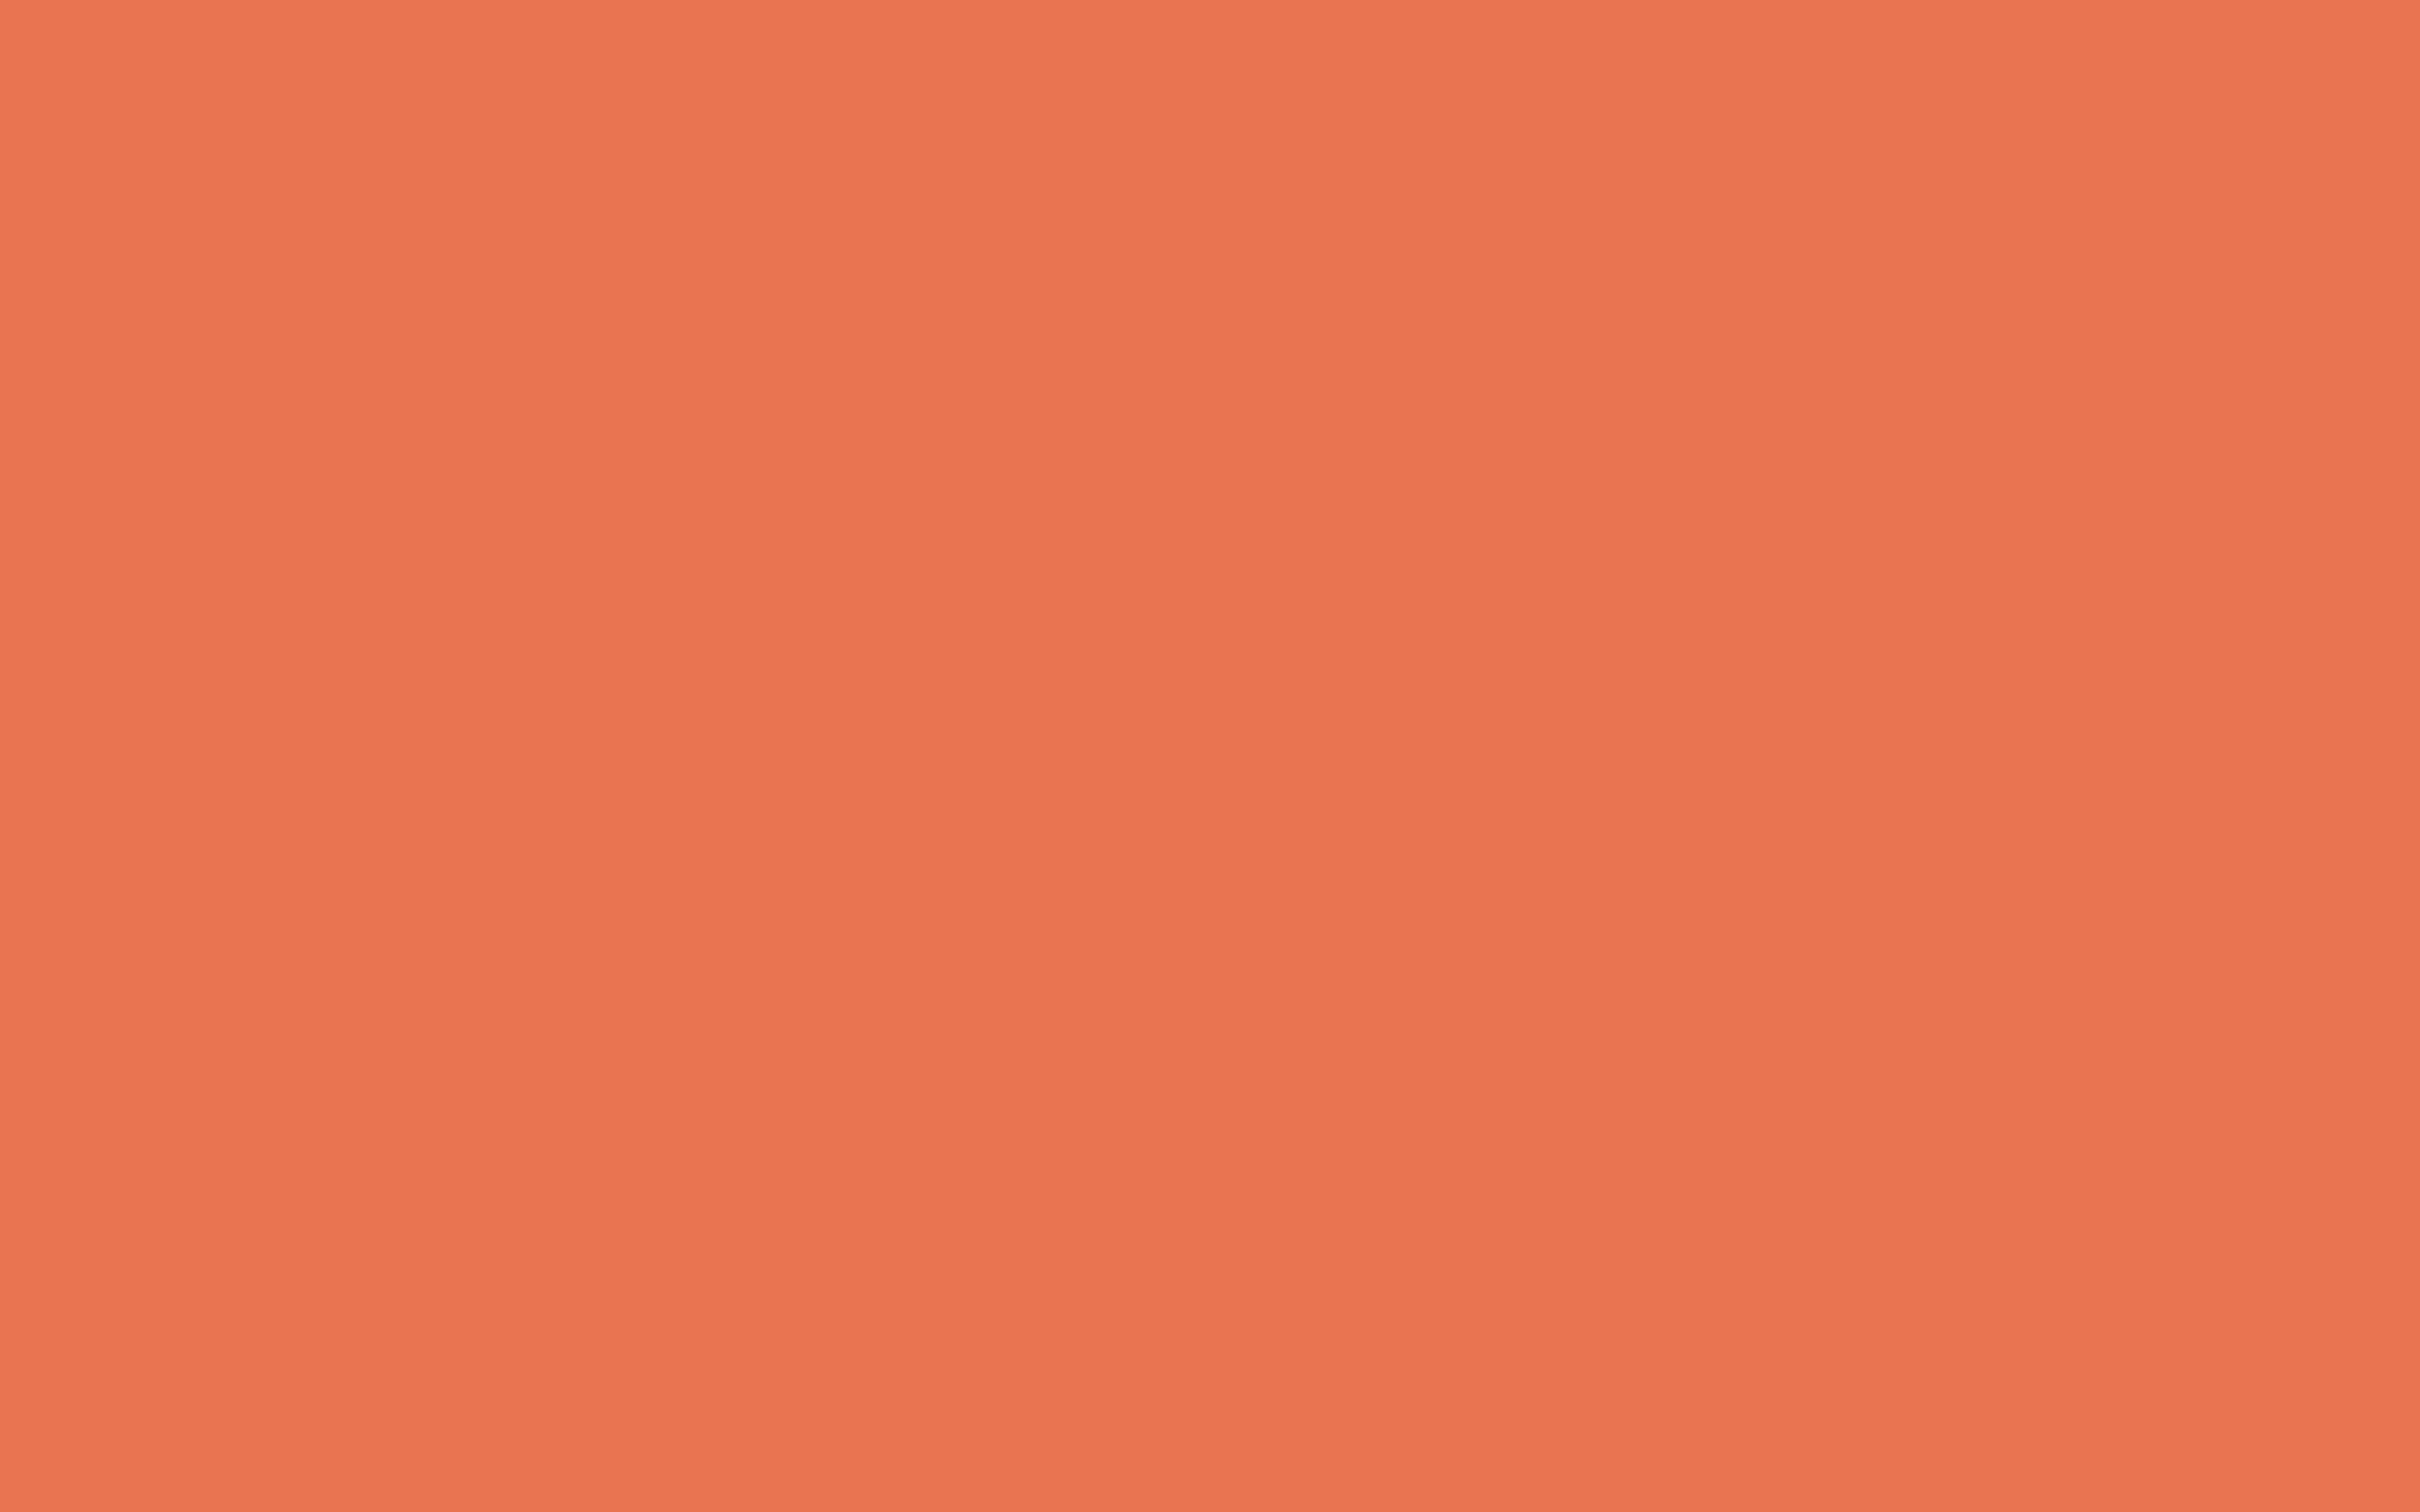 2560x1600 Burnt Sienna Solid Color Background